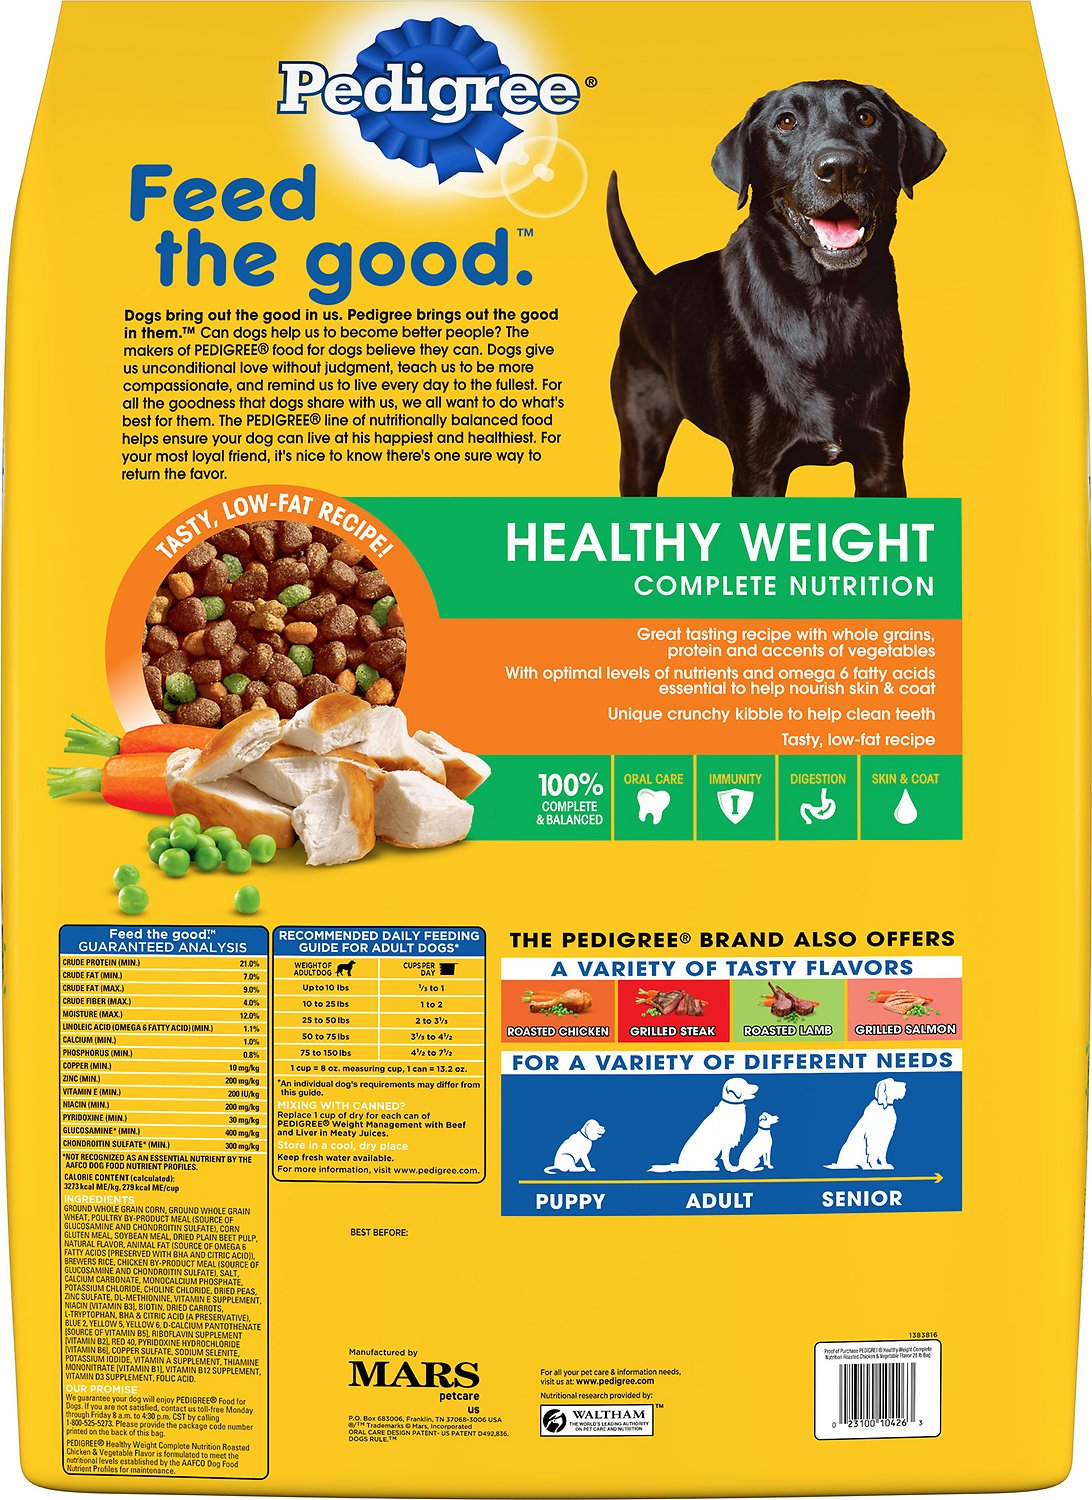 Pedigree Dog Food Serving Size